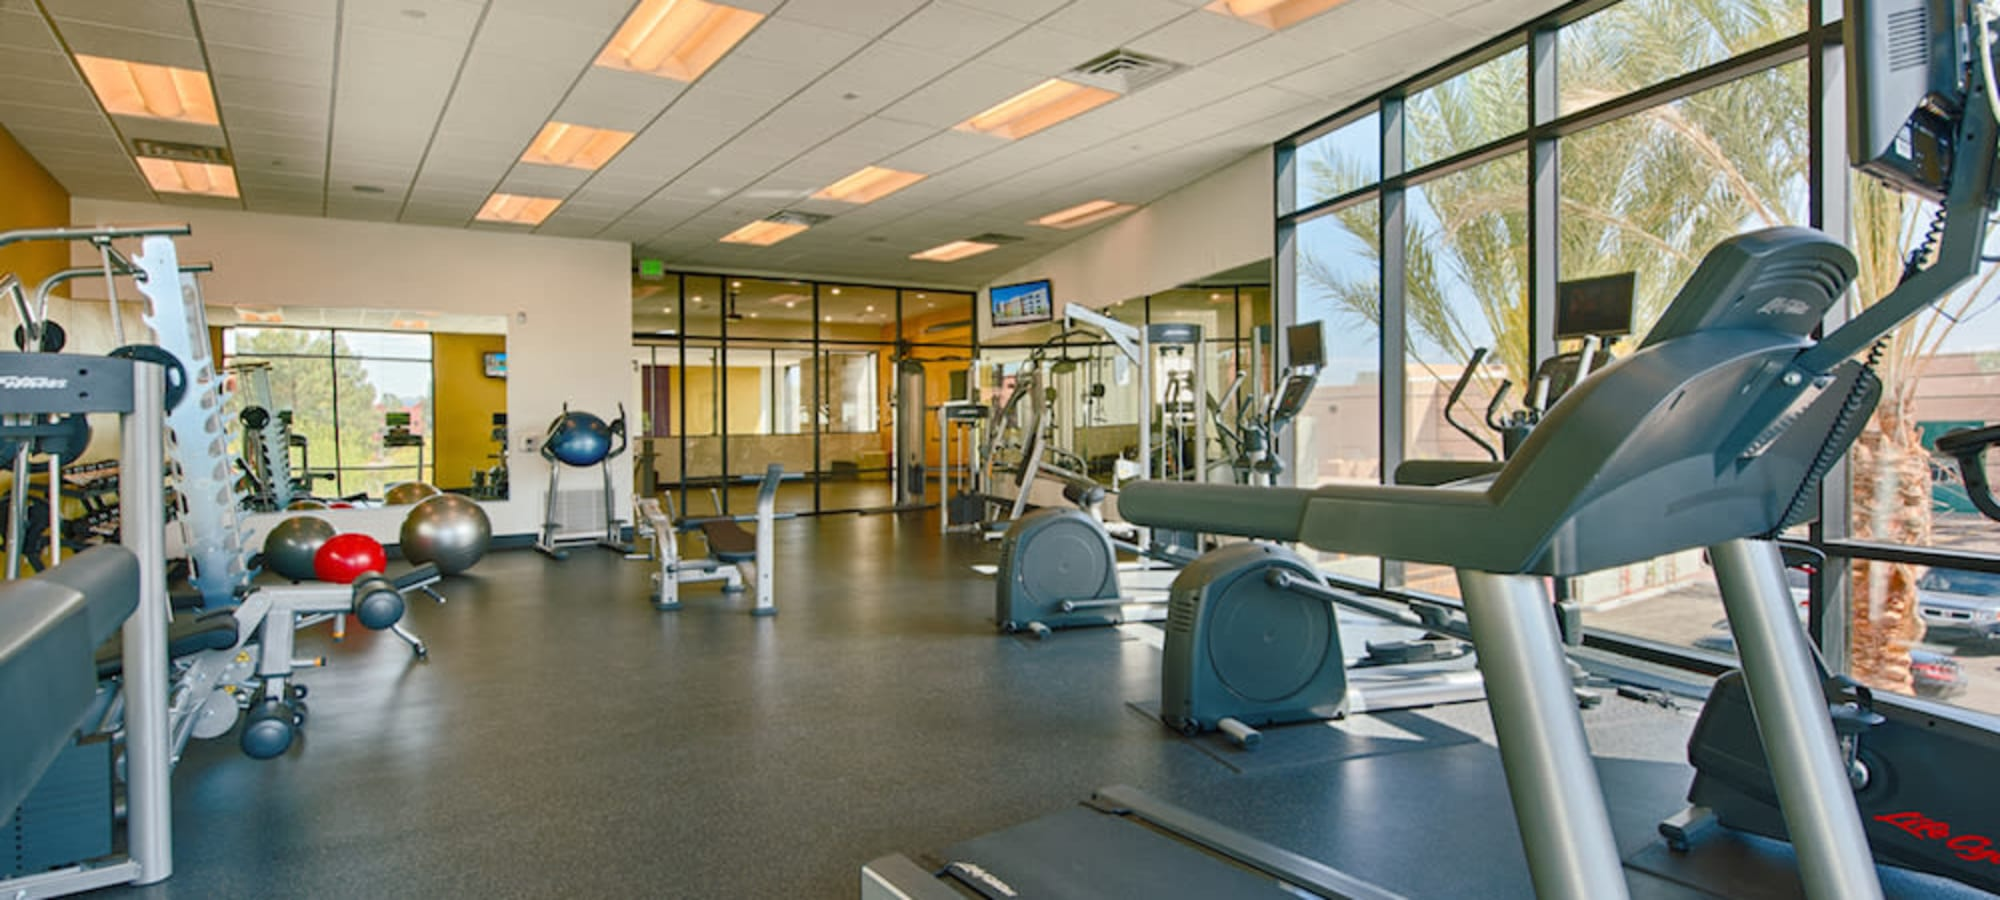 Well-equipped fitness center at Cactus Forty-2 in Phoenix, Arizona